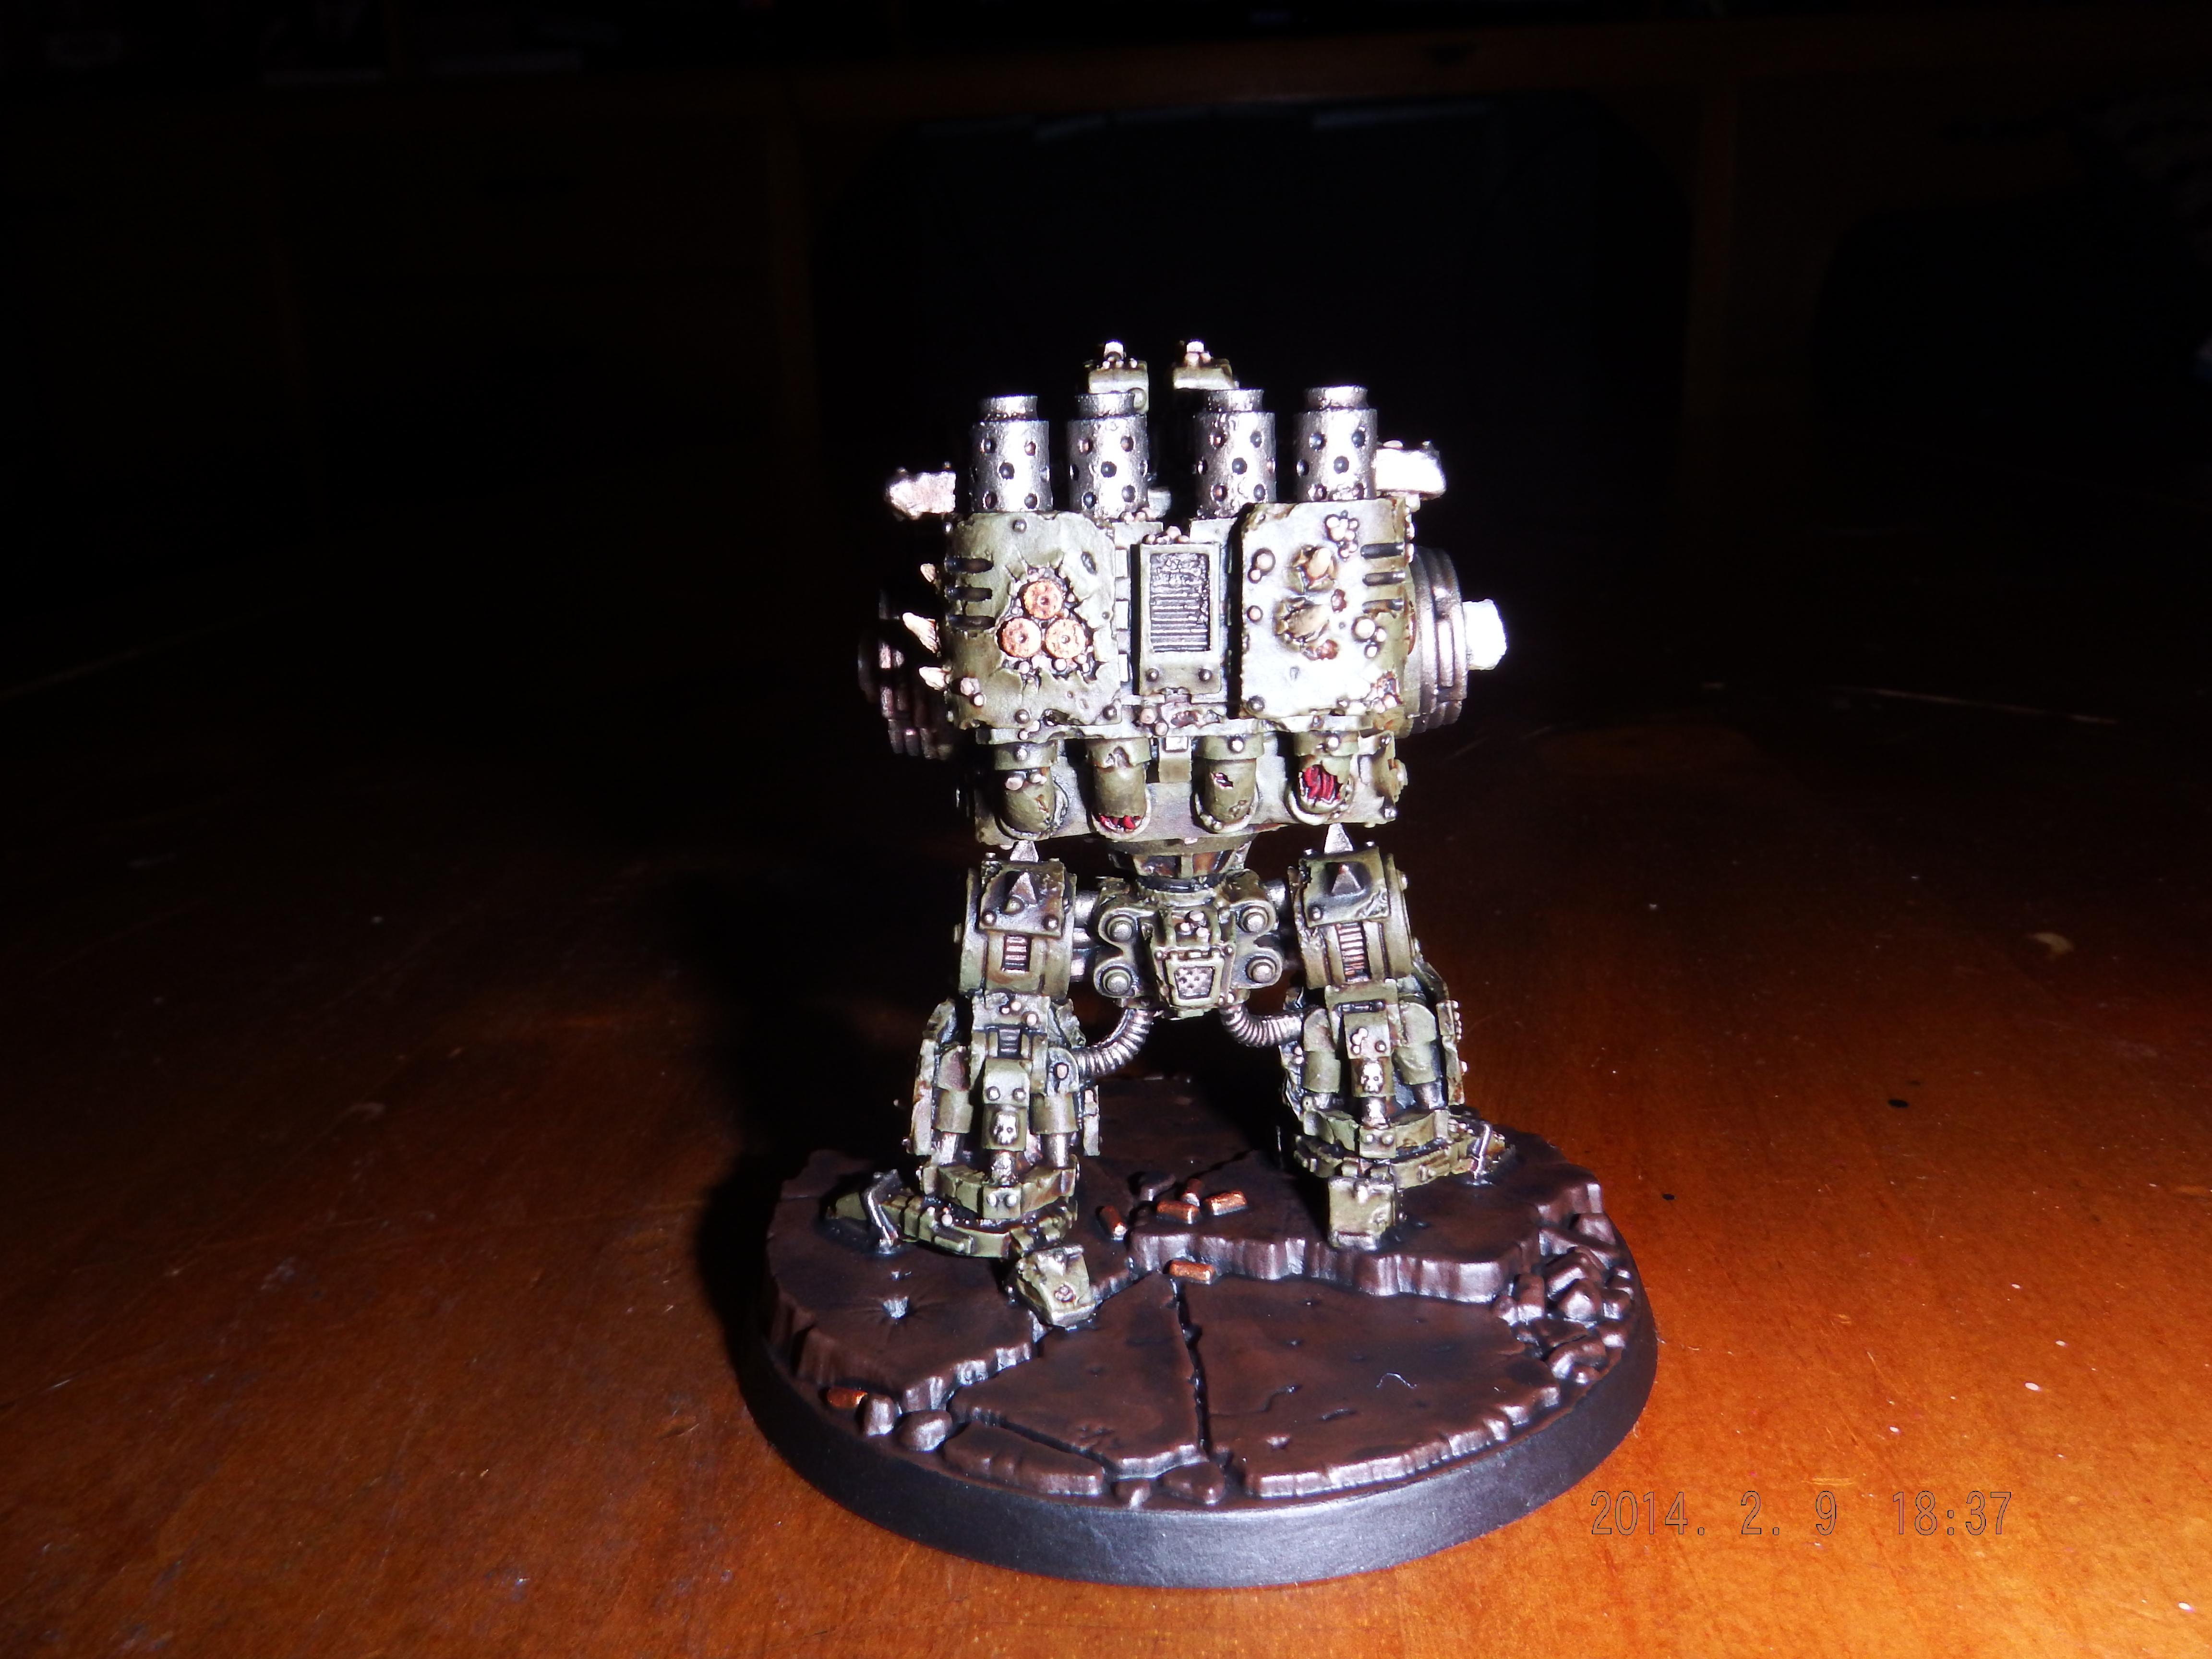 Chaos, Chaos Space Marines, Death Guard, Death Guard Dreadnought, Death Guard Helbrute, Death Guard Sorcerer, Nurgle, Nurgle Chaos Space Marines, Nurgle Dreadnought, Nurgle Helbrute, Nurgle Sorcerer, Plague Marines, Typhus, Typhus Herald Of Nurgle, Typhus Host Of The Destroyer Hive